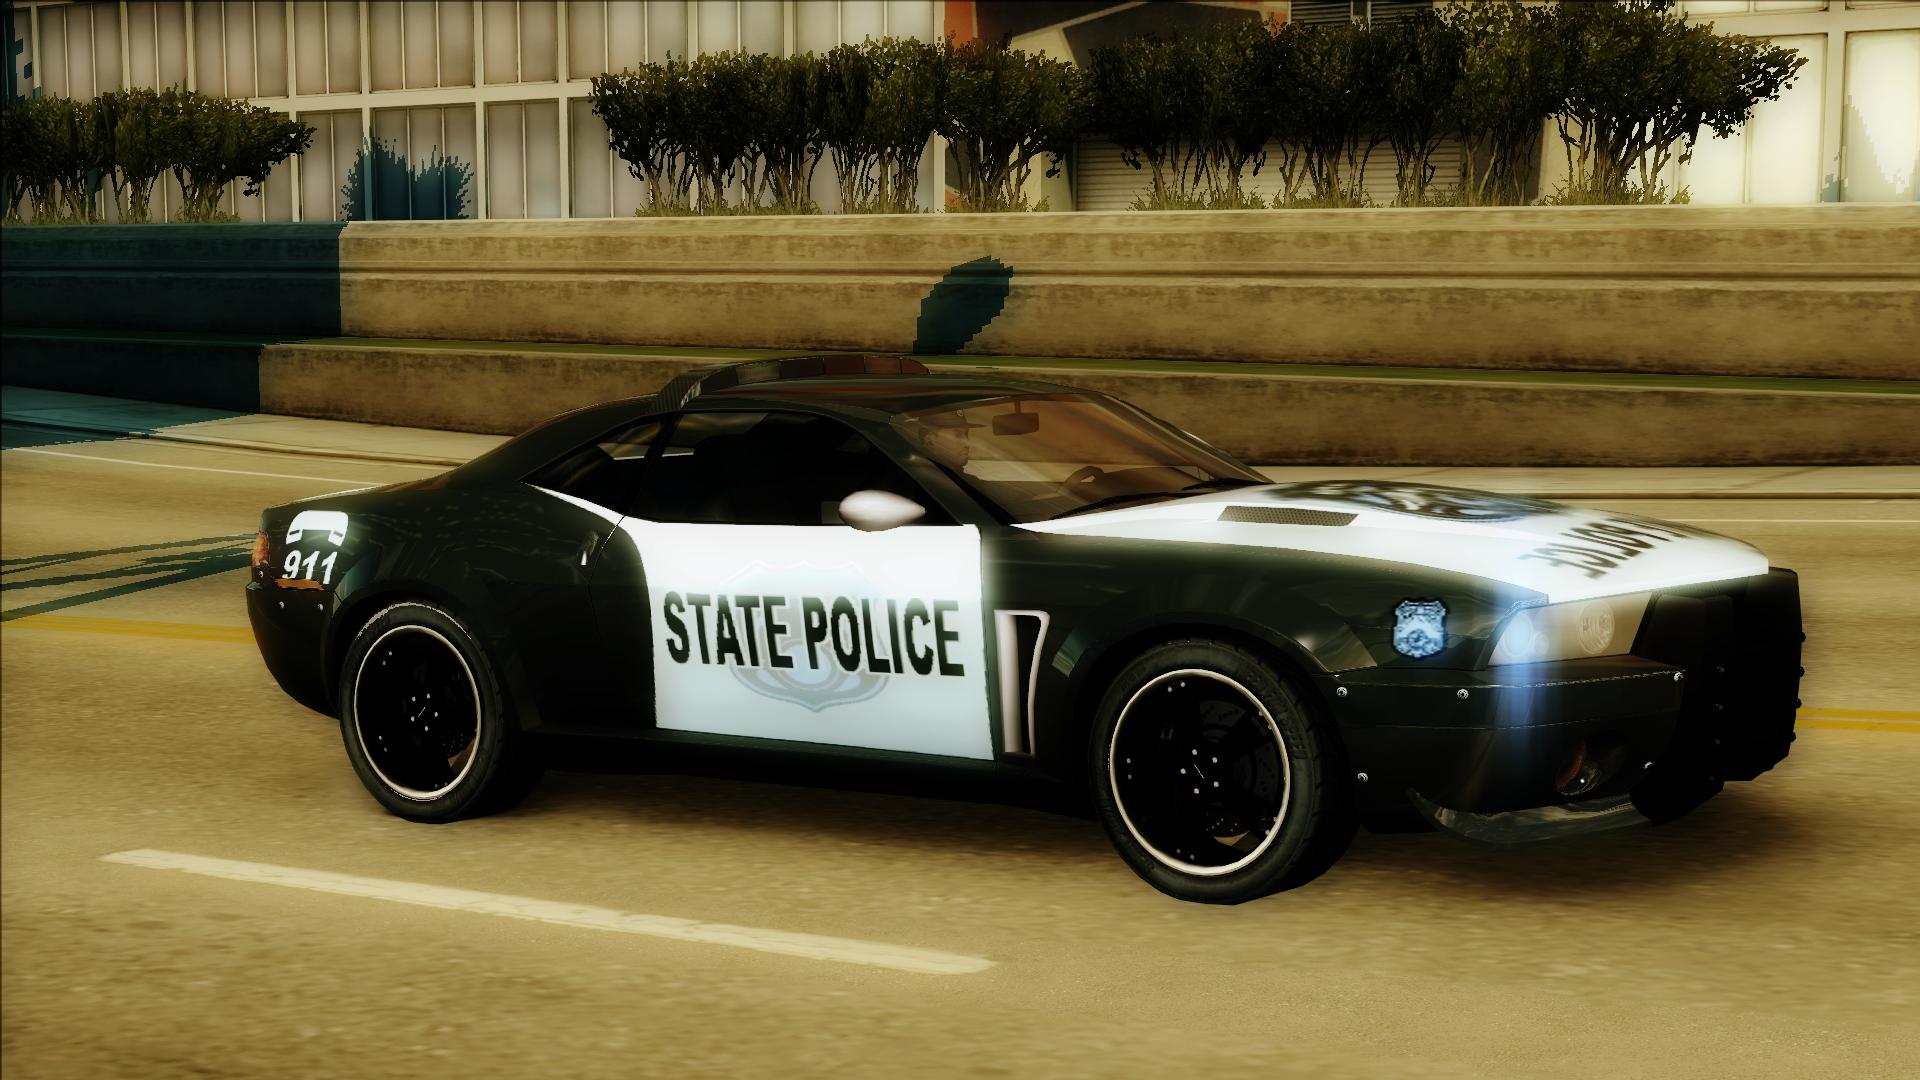 Police State Muscle Cruiser | Need for Speed Wiki | FANDOM powered ...